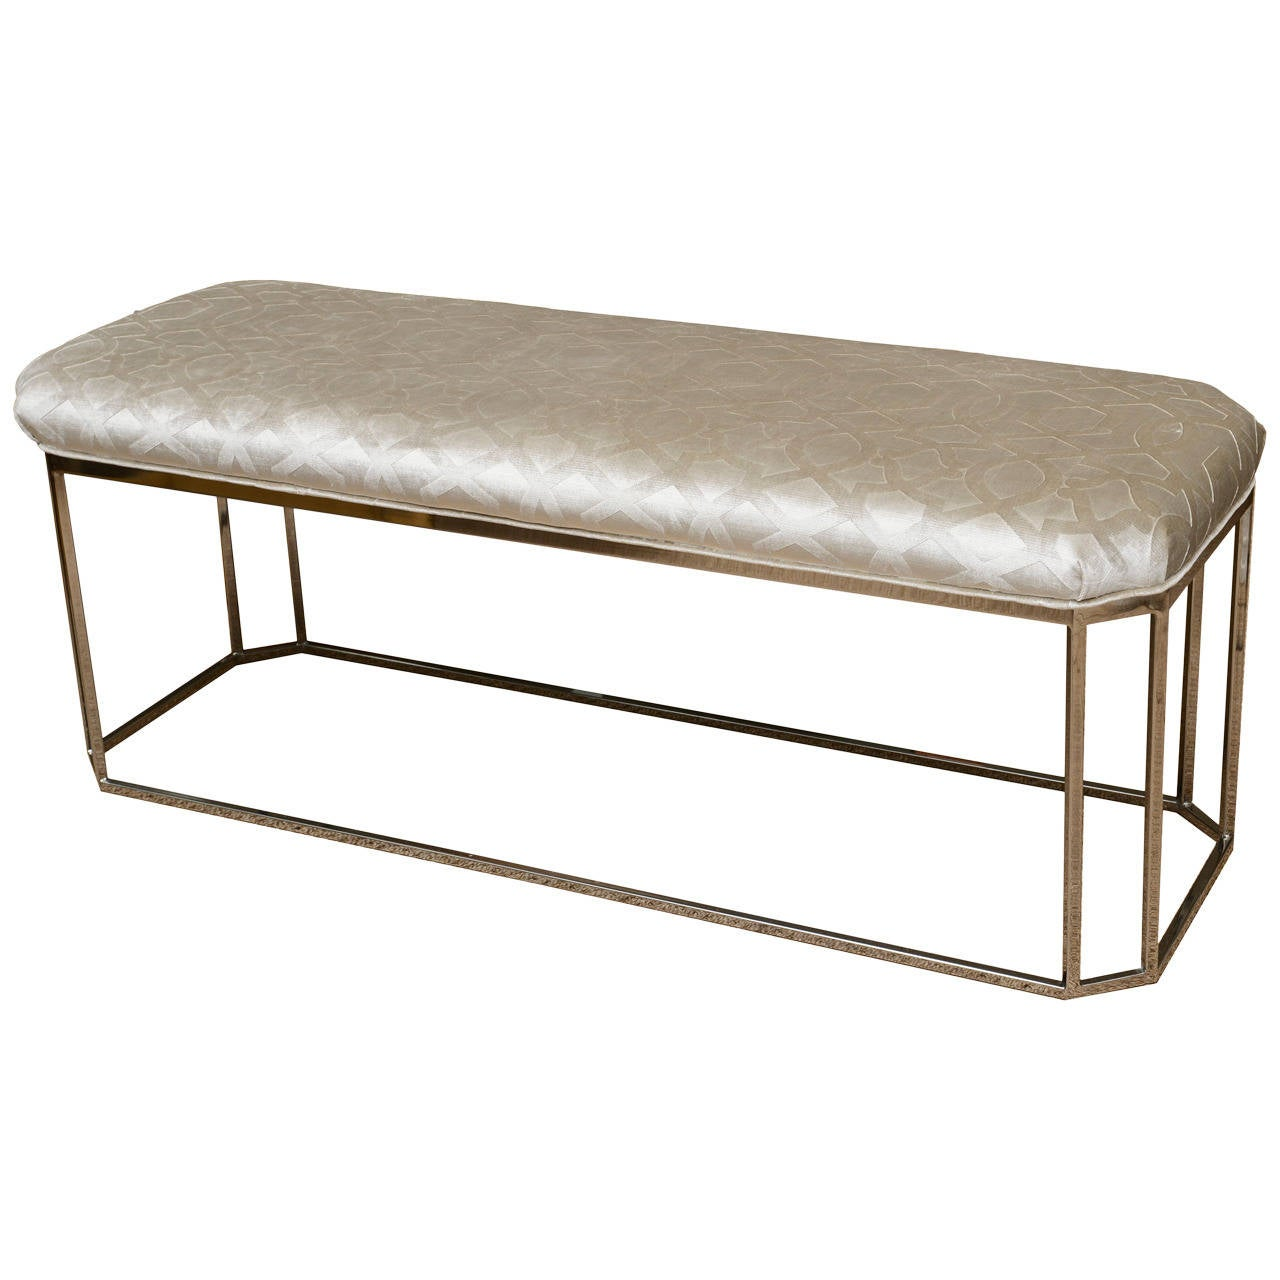 Milo Baughman Vintage Hexagonal Chrome and Newly Upholstered Bench  For Sale